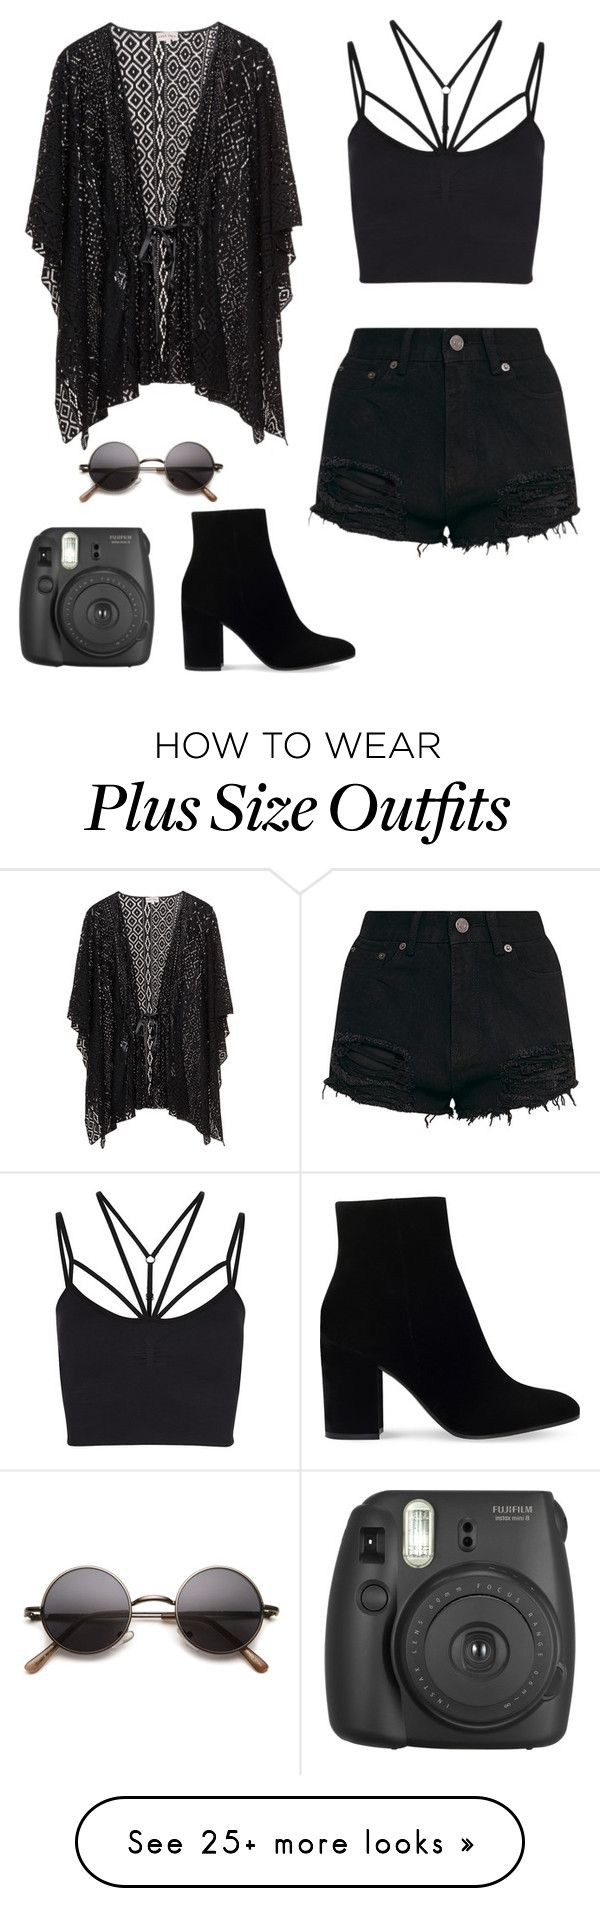 """""""Coachella Black (late)"""" by alwaysbegoth on Polyvore featuring Sweaty Betty, Gianvito Rossi and Fujifilm"""